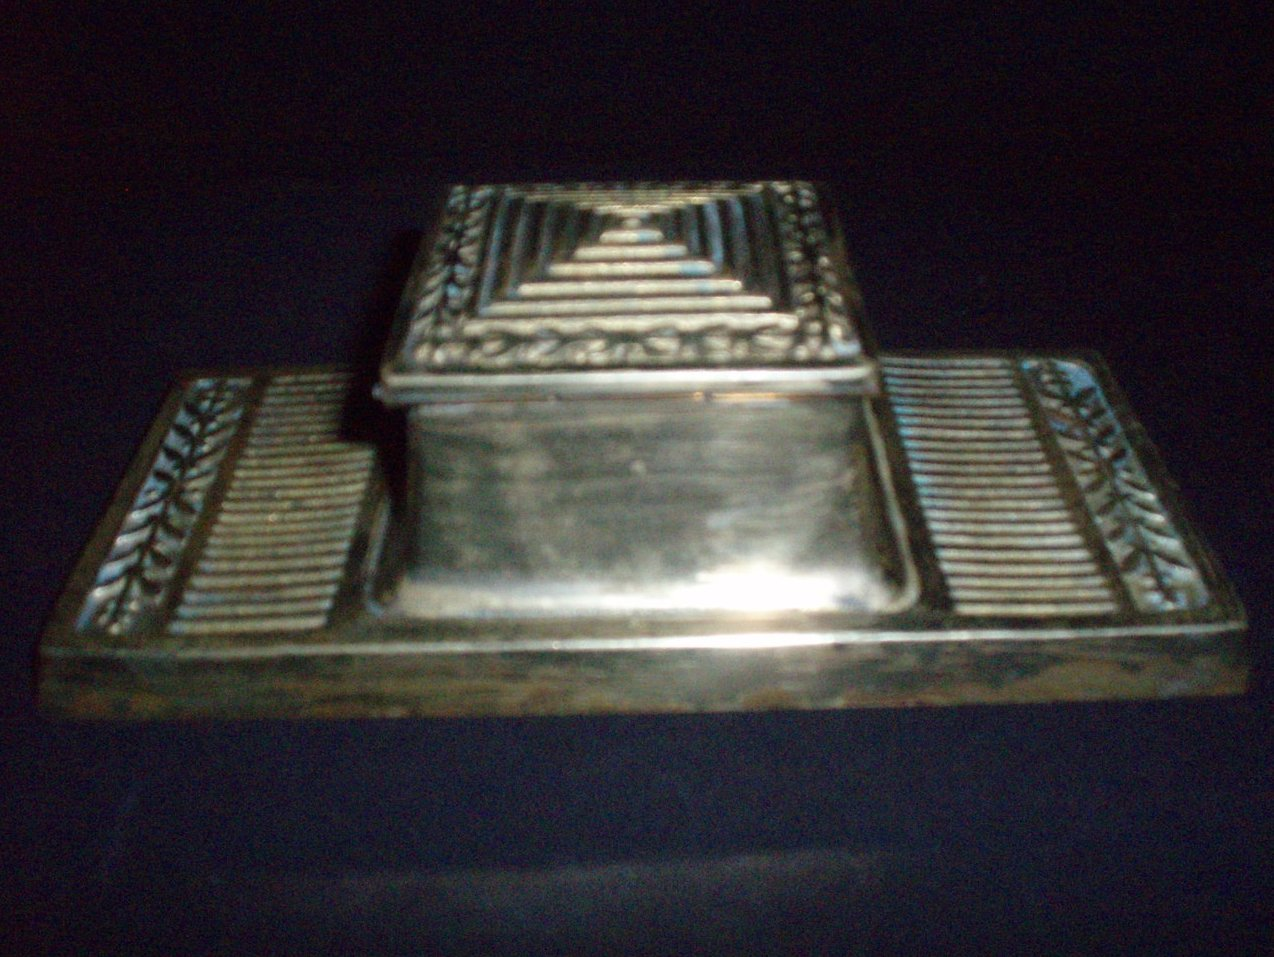 Bradley Hubbard polished brass Arts & Craft inkwell 1900